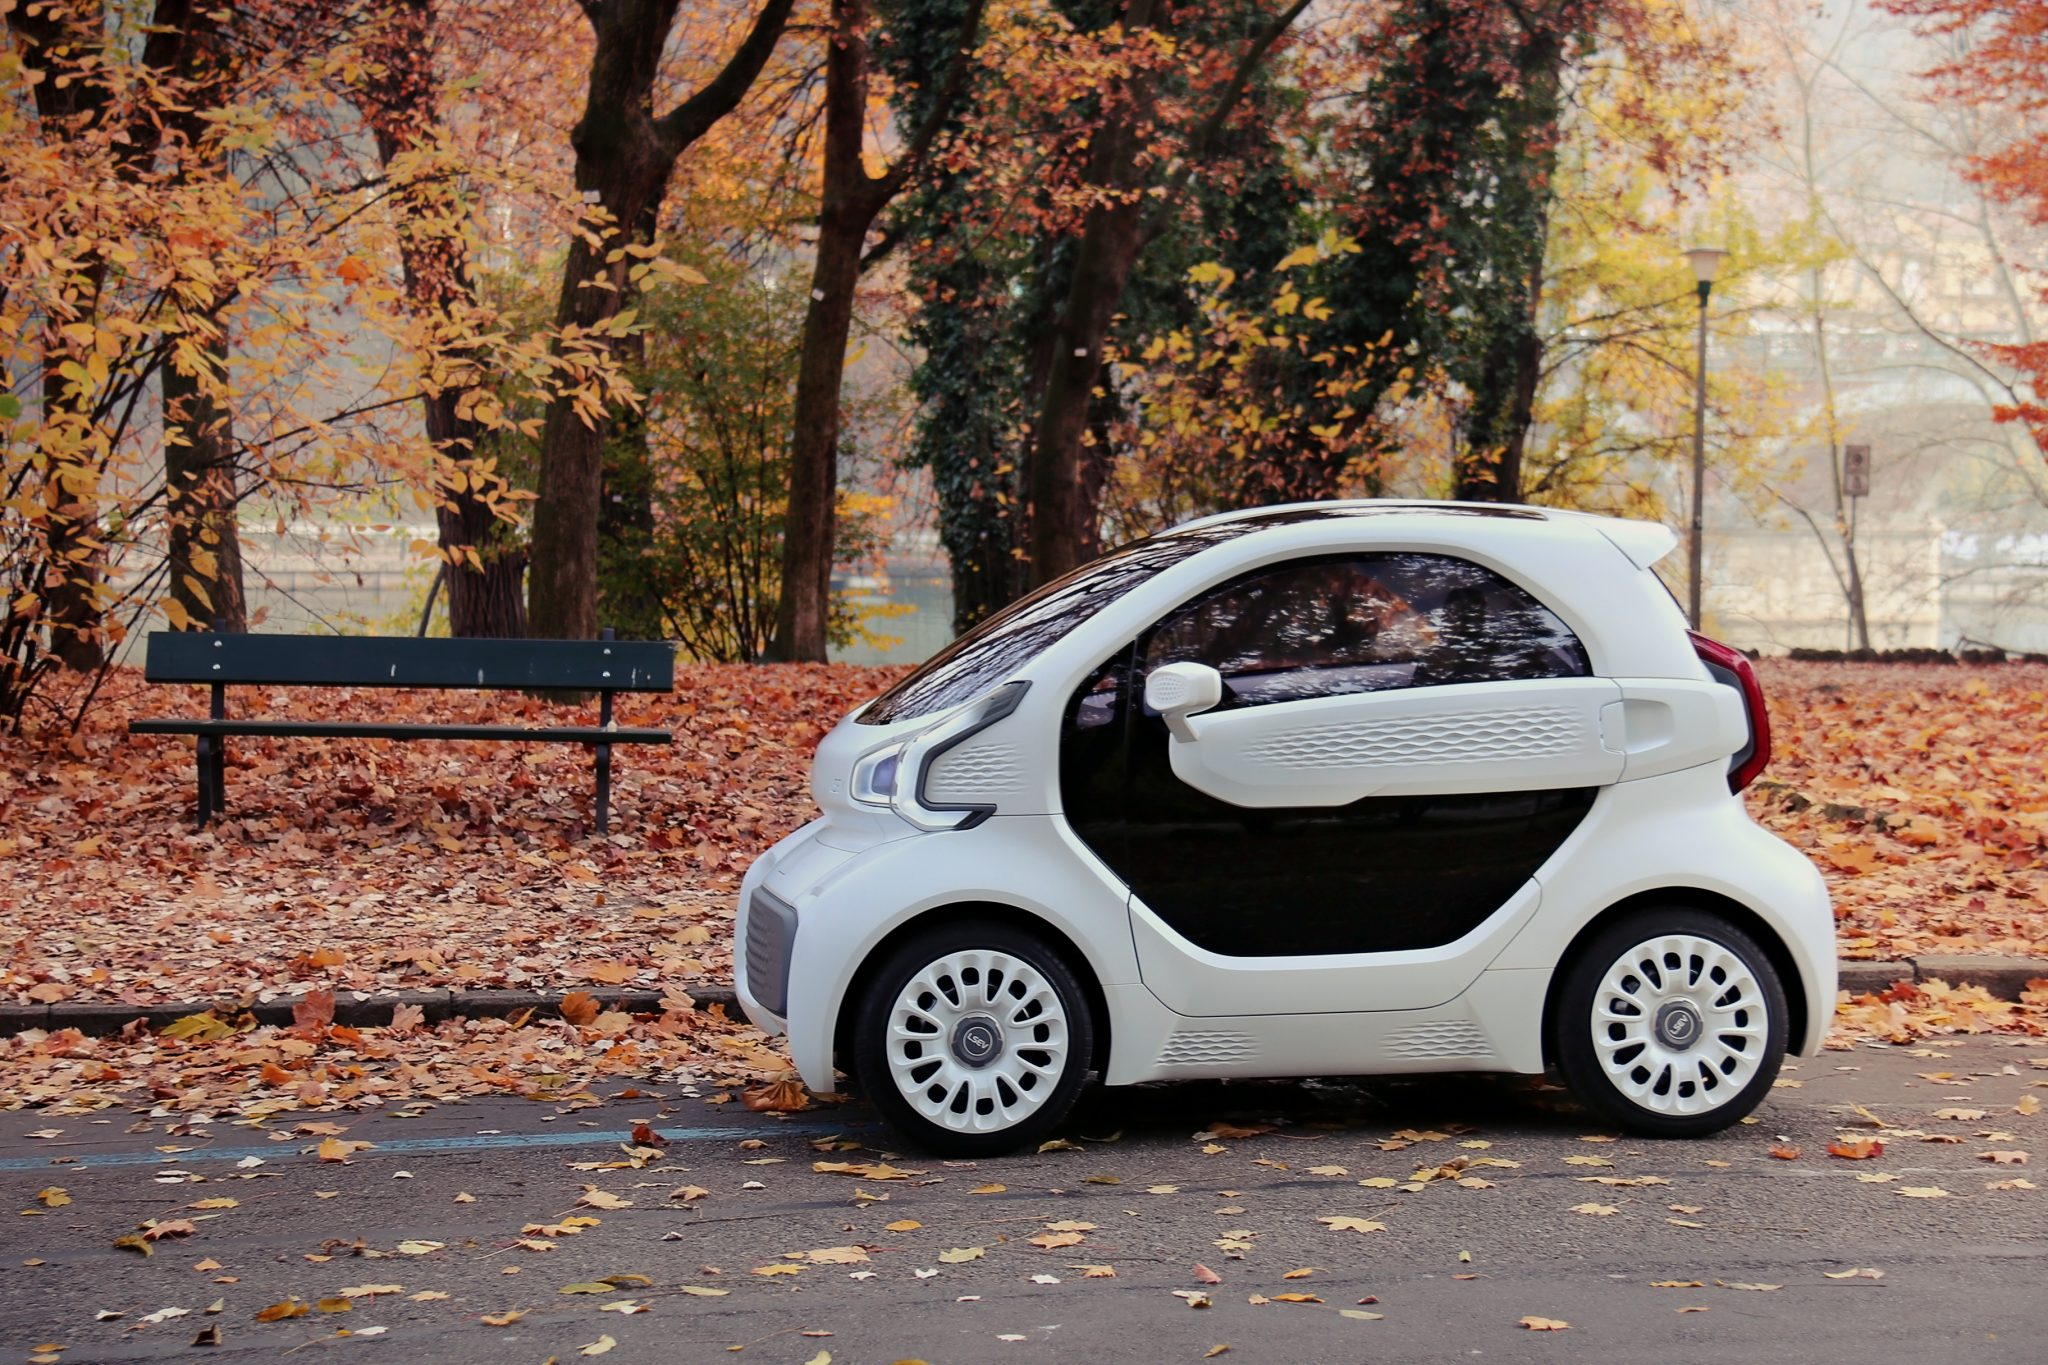 XEV and Polymaker's 3D printed electric car. Photo via Polymaker